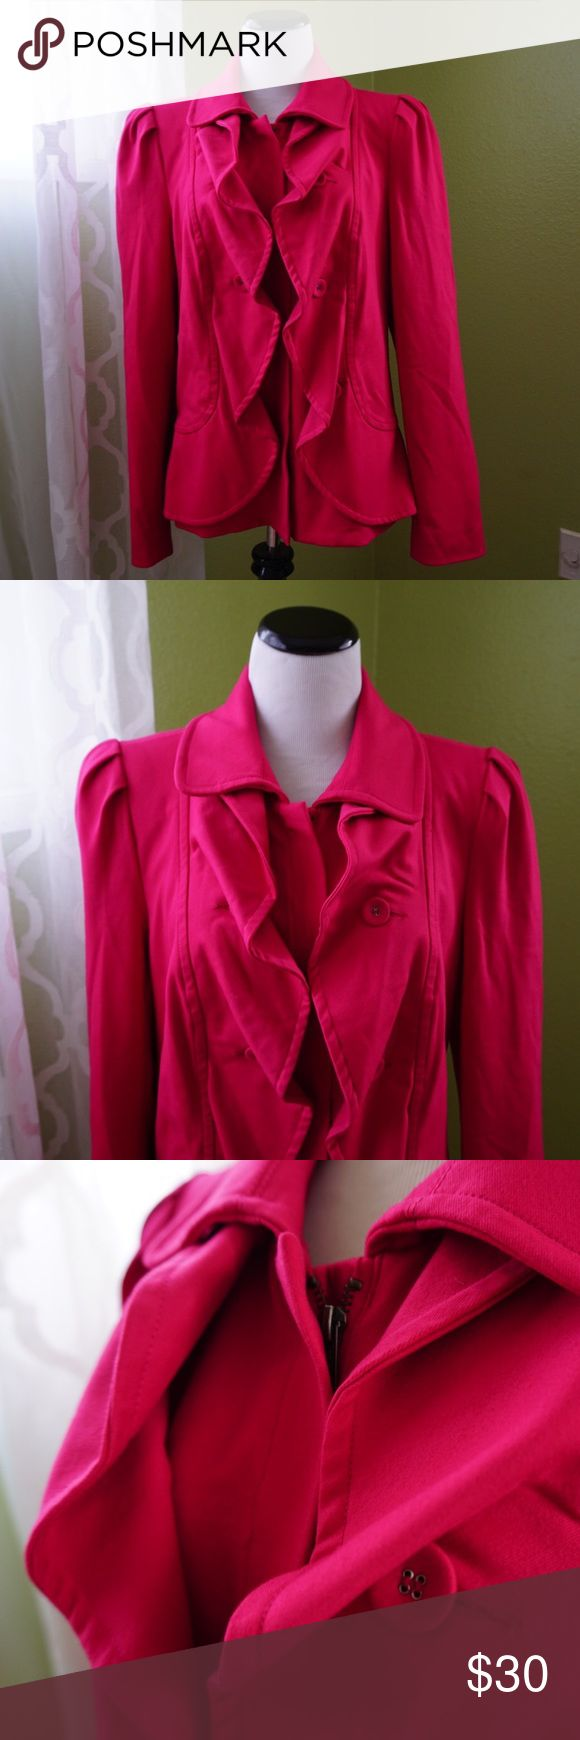 INC Hot Pink Blazer Zip up blazer/jacket. Buttons under ruffle/wavy detail. Buttons are just for look - they do not button. INC International Concepts Jackets & Coats Blazers